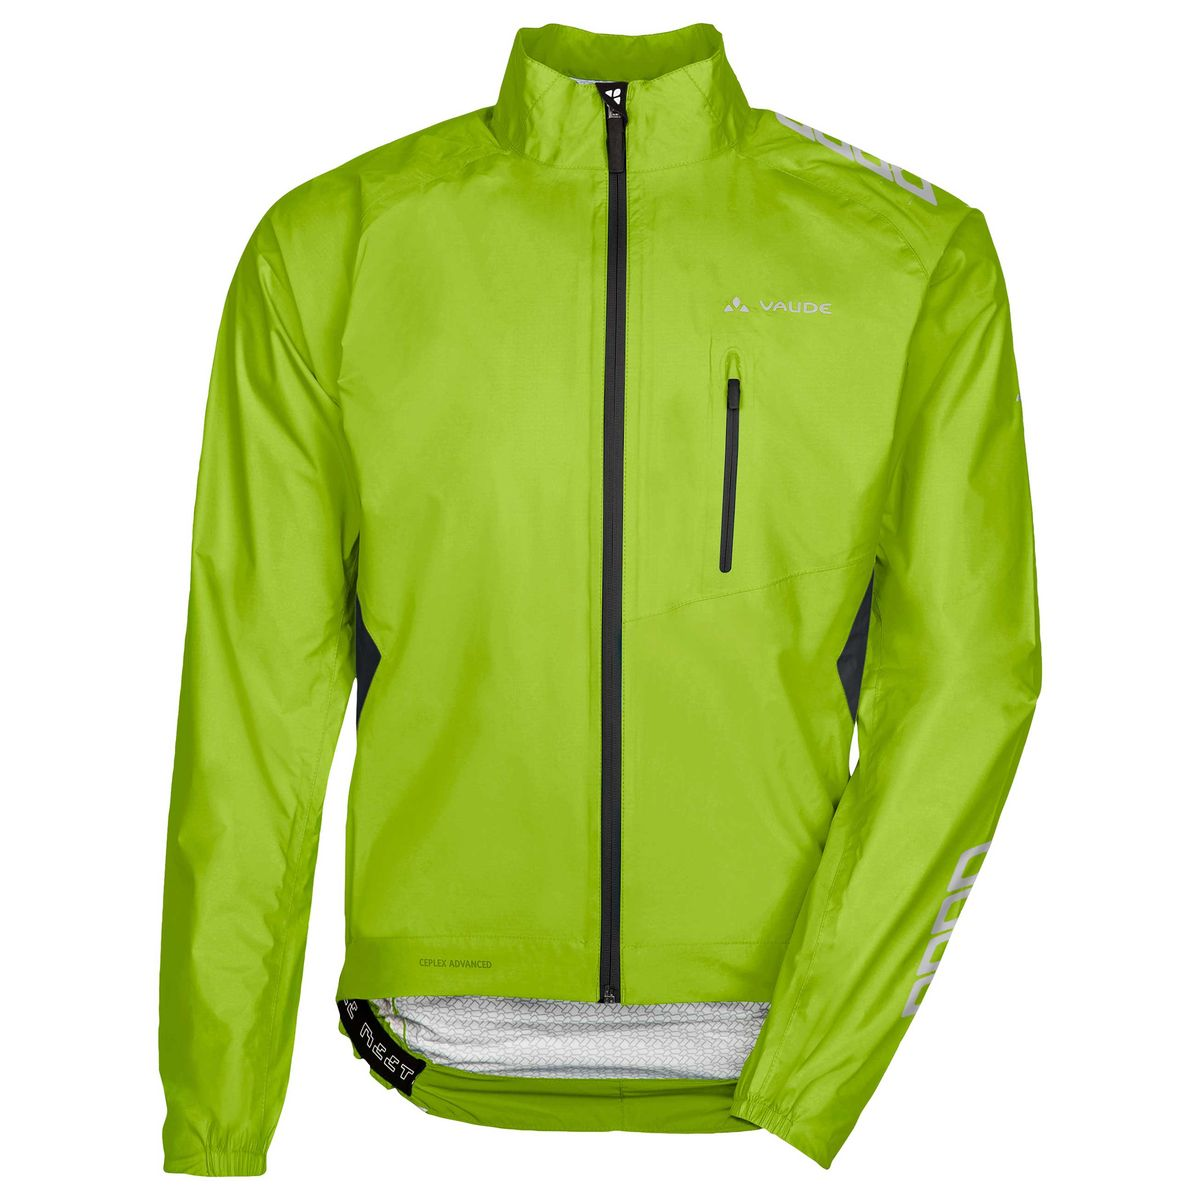 SPRAY JACKET IV all-weather jacket